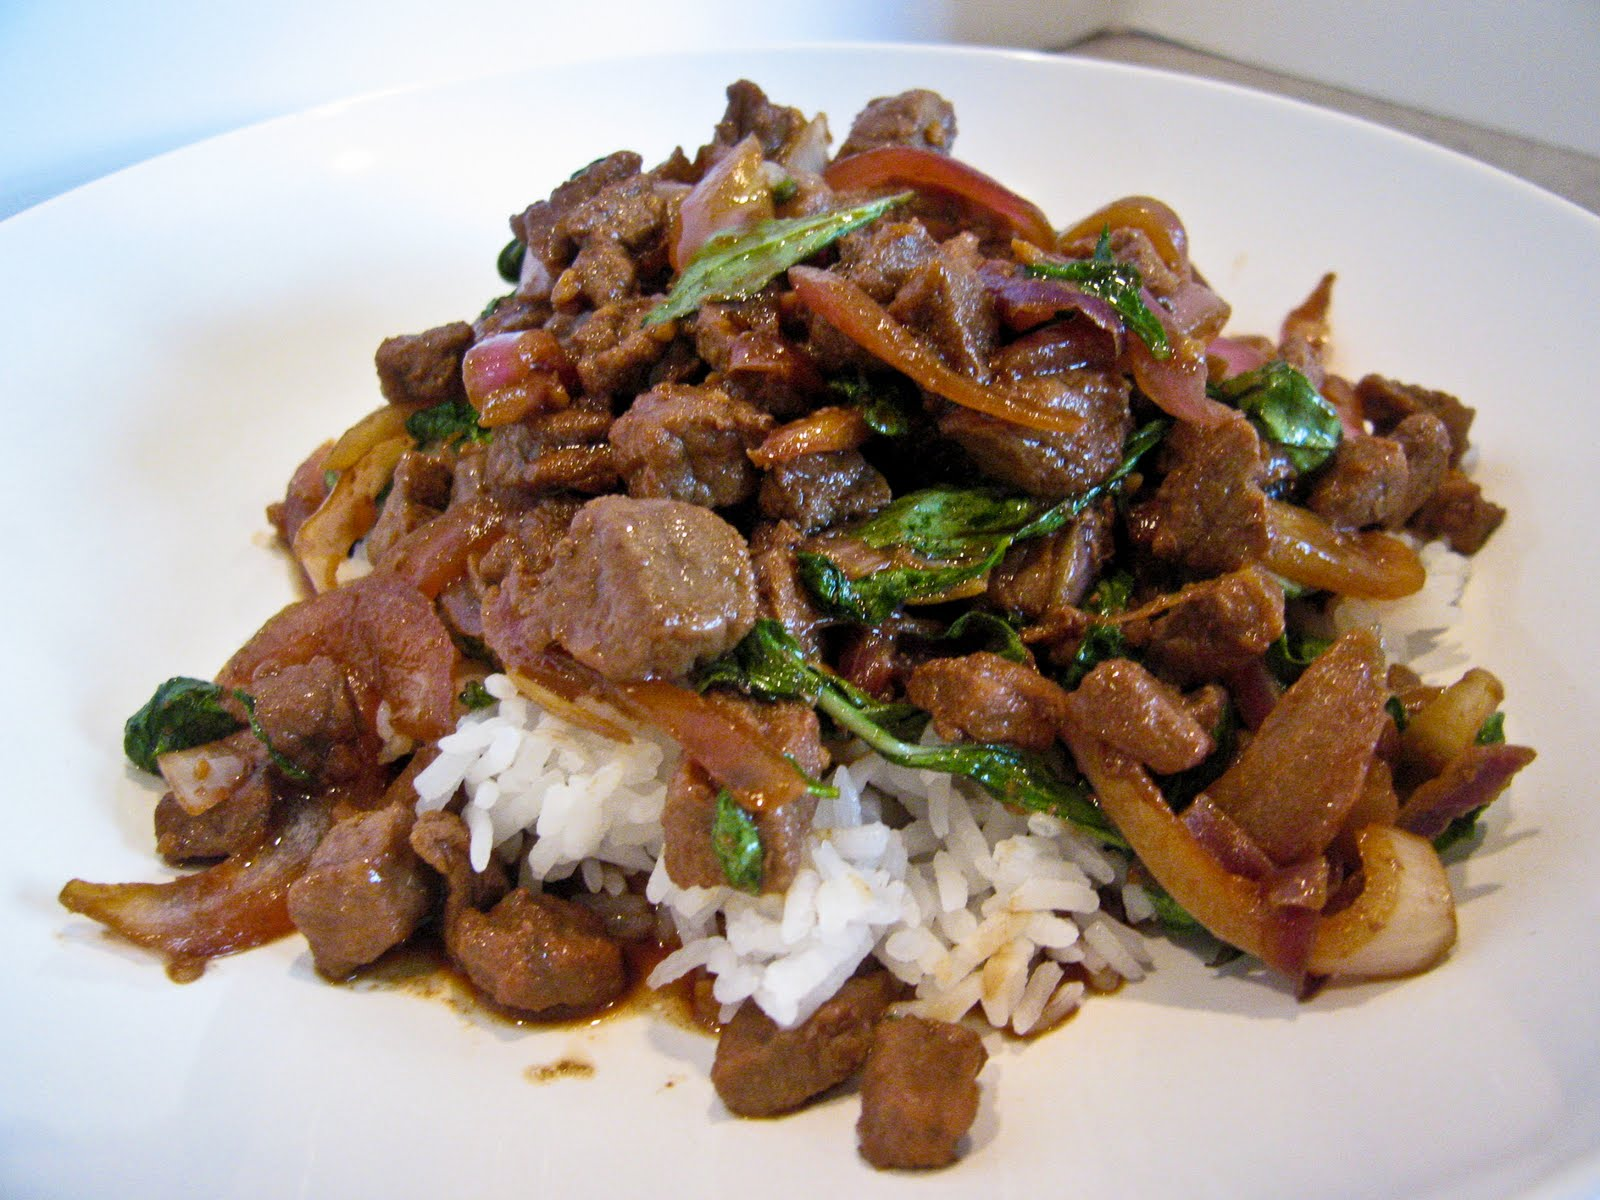 Thai Stir Fried Chopped Beef With Basil | The Spiced Life